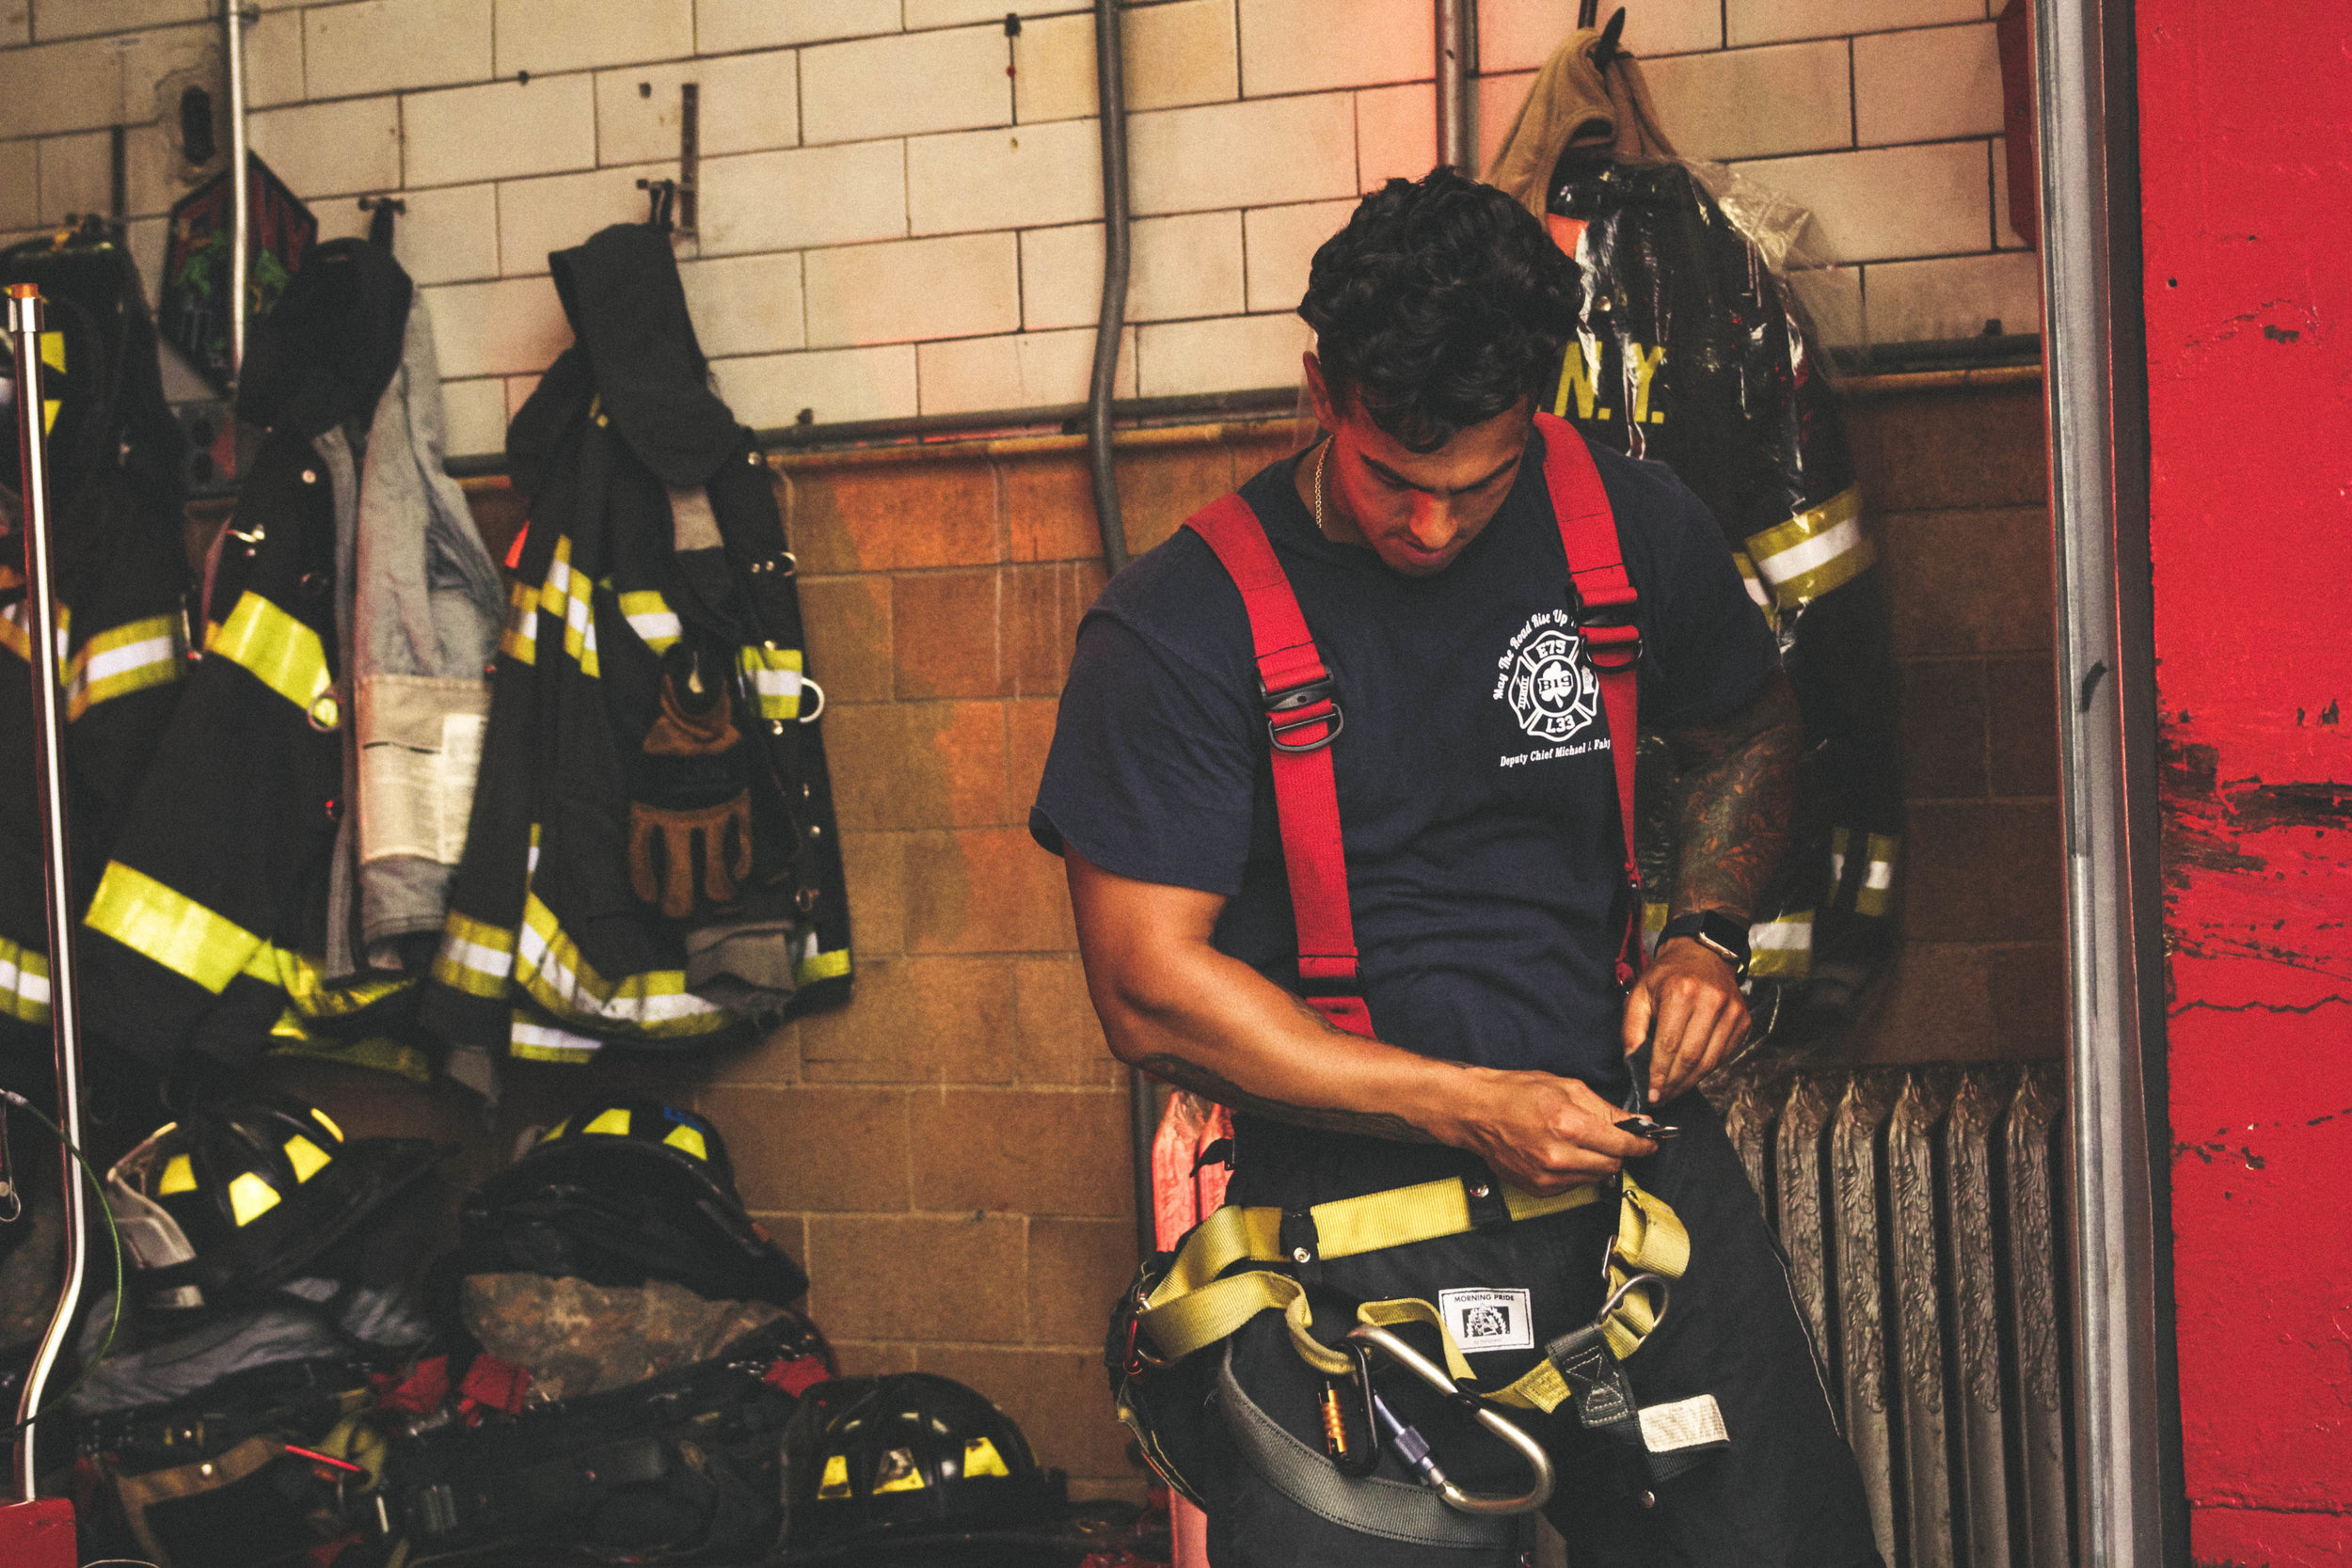 Fire fighter preparing for a call